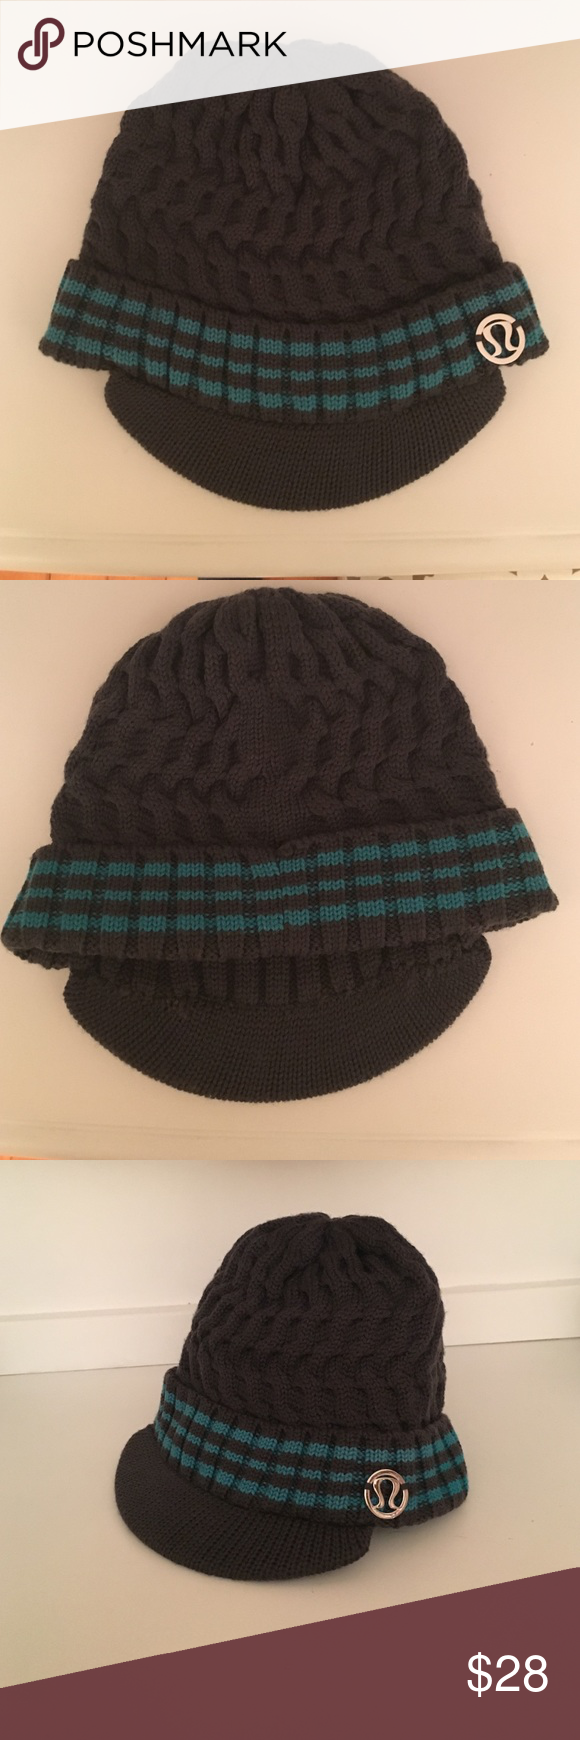 a13fd1fd784 Lululemon Striped Brimmed Beanie-Charcoal and Teal Made from 100% merino  wool (non-itchy) is super soft and warm. The brim provides a small visor as  well a ...